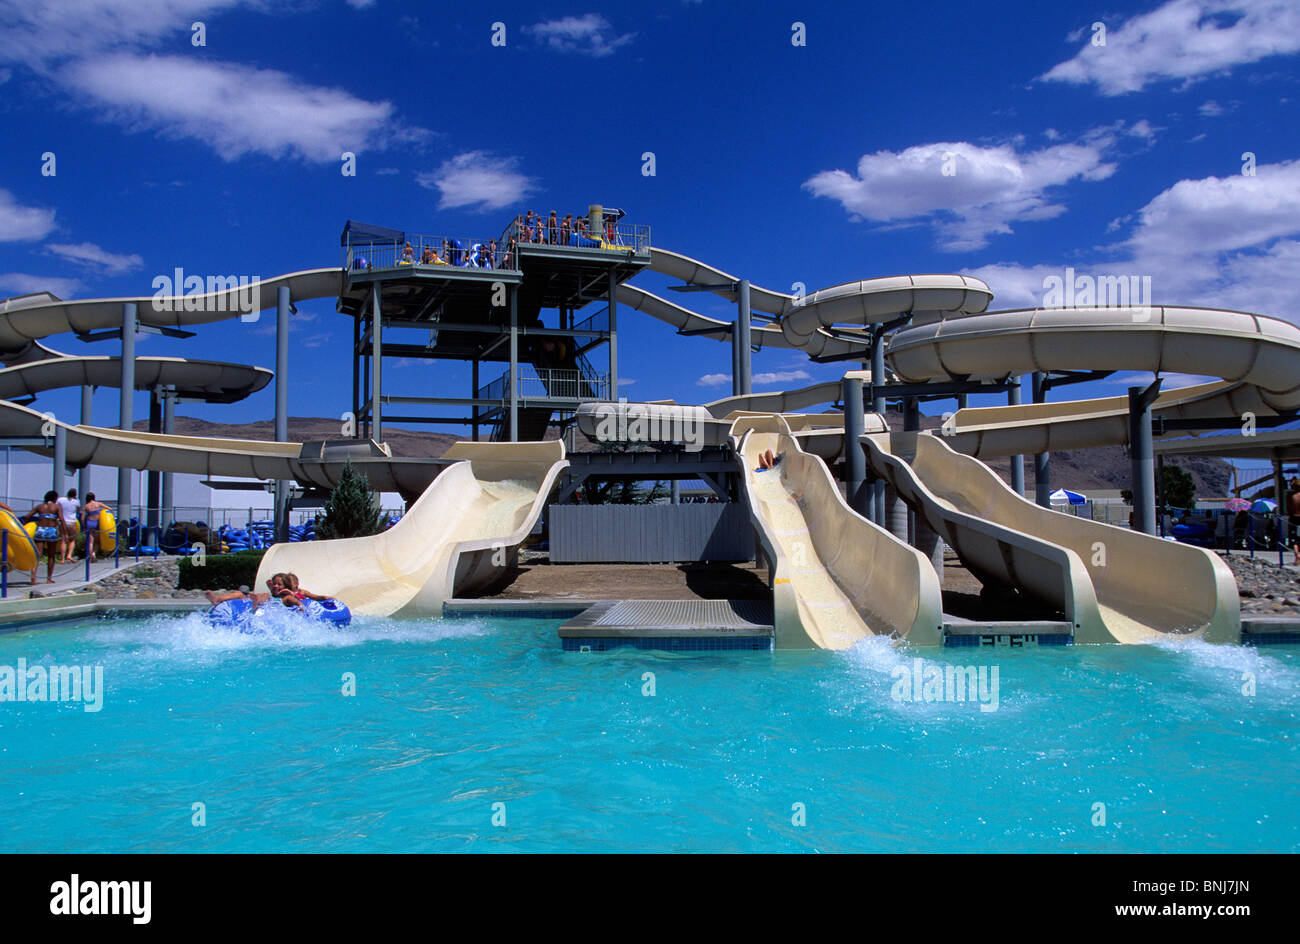 USA Nevada town city swimming-pool water park water slides ...